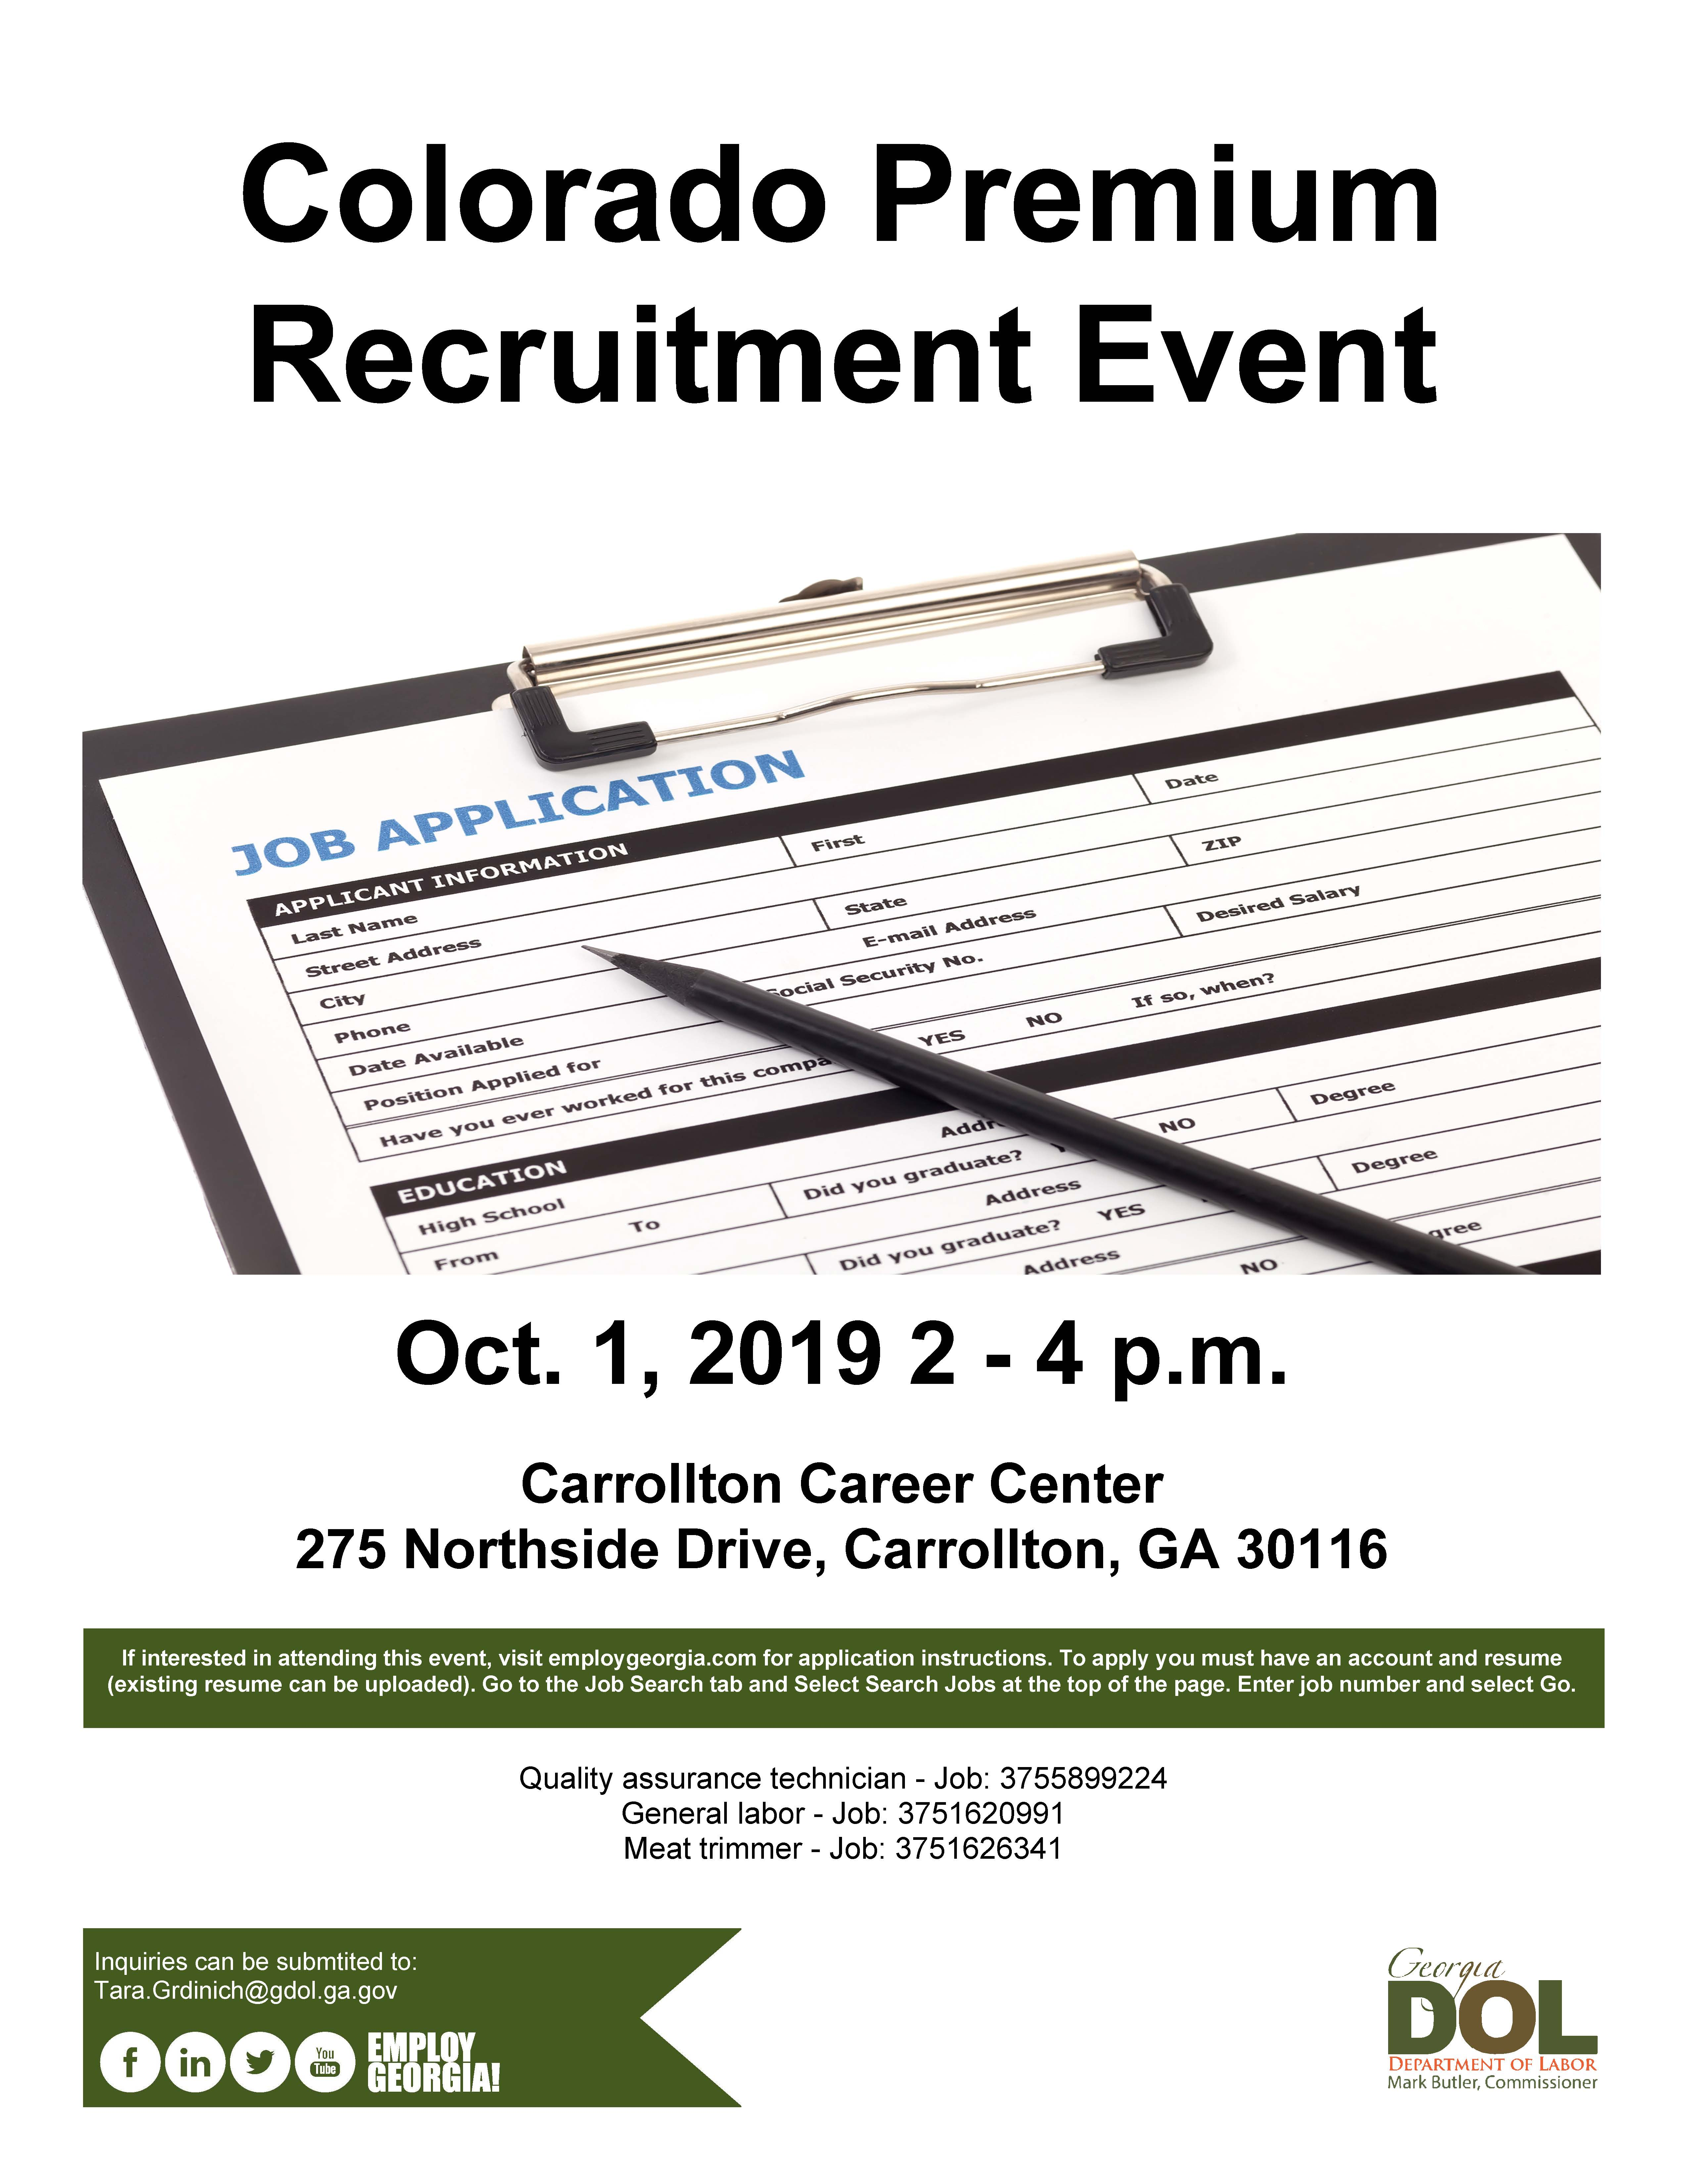 Colorado Premium Recruitment Event